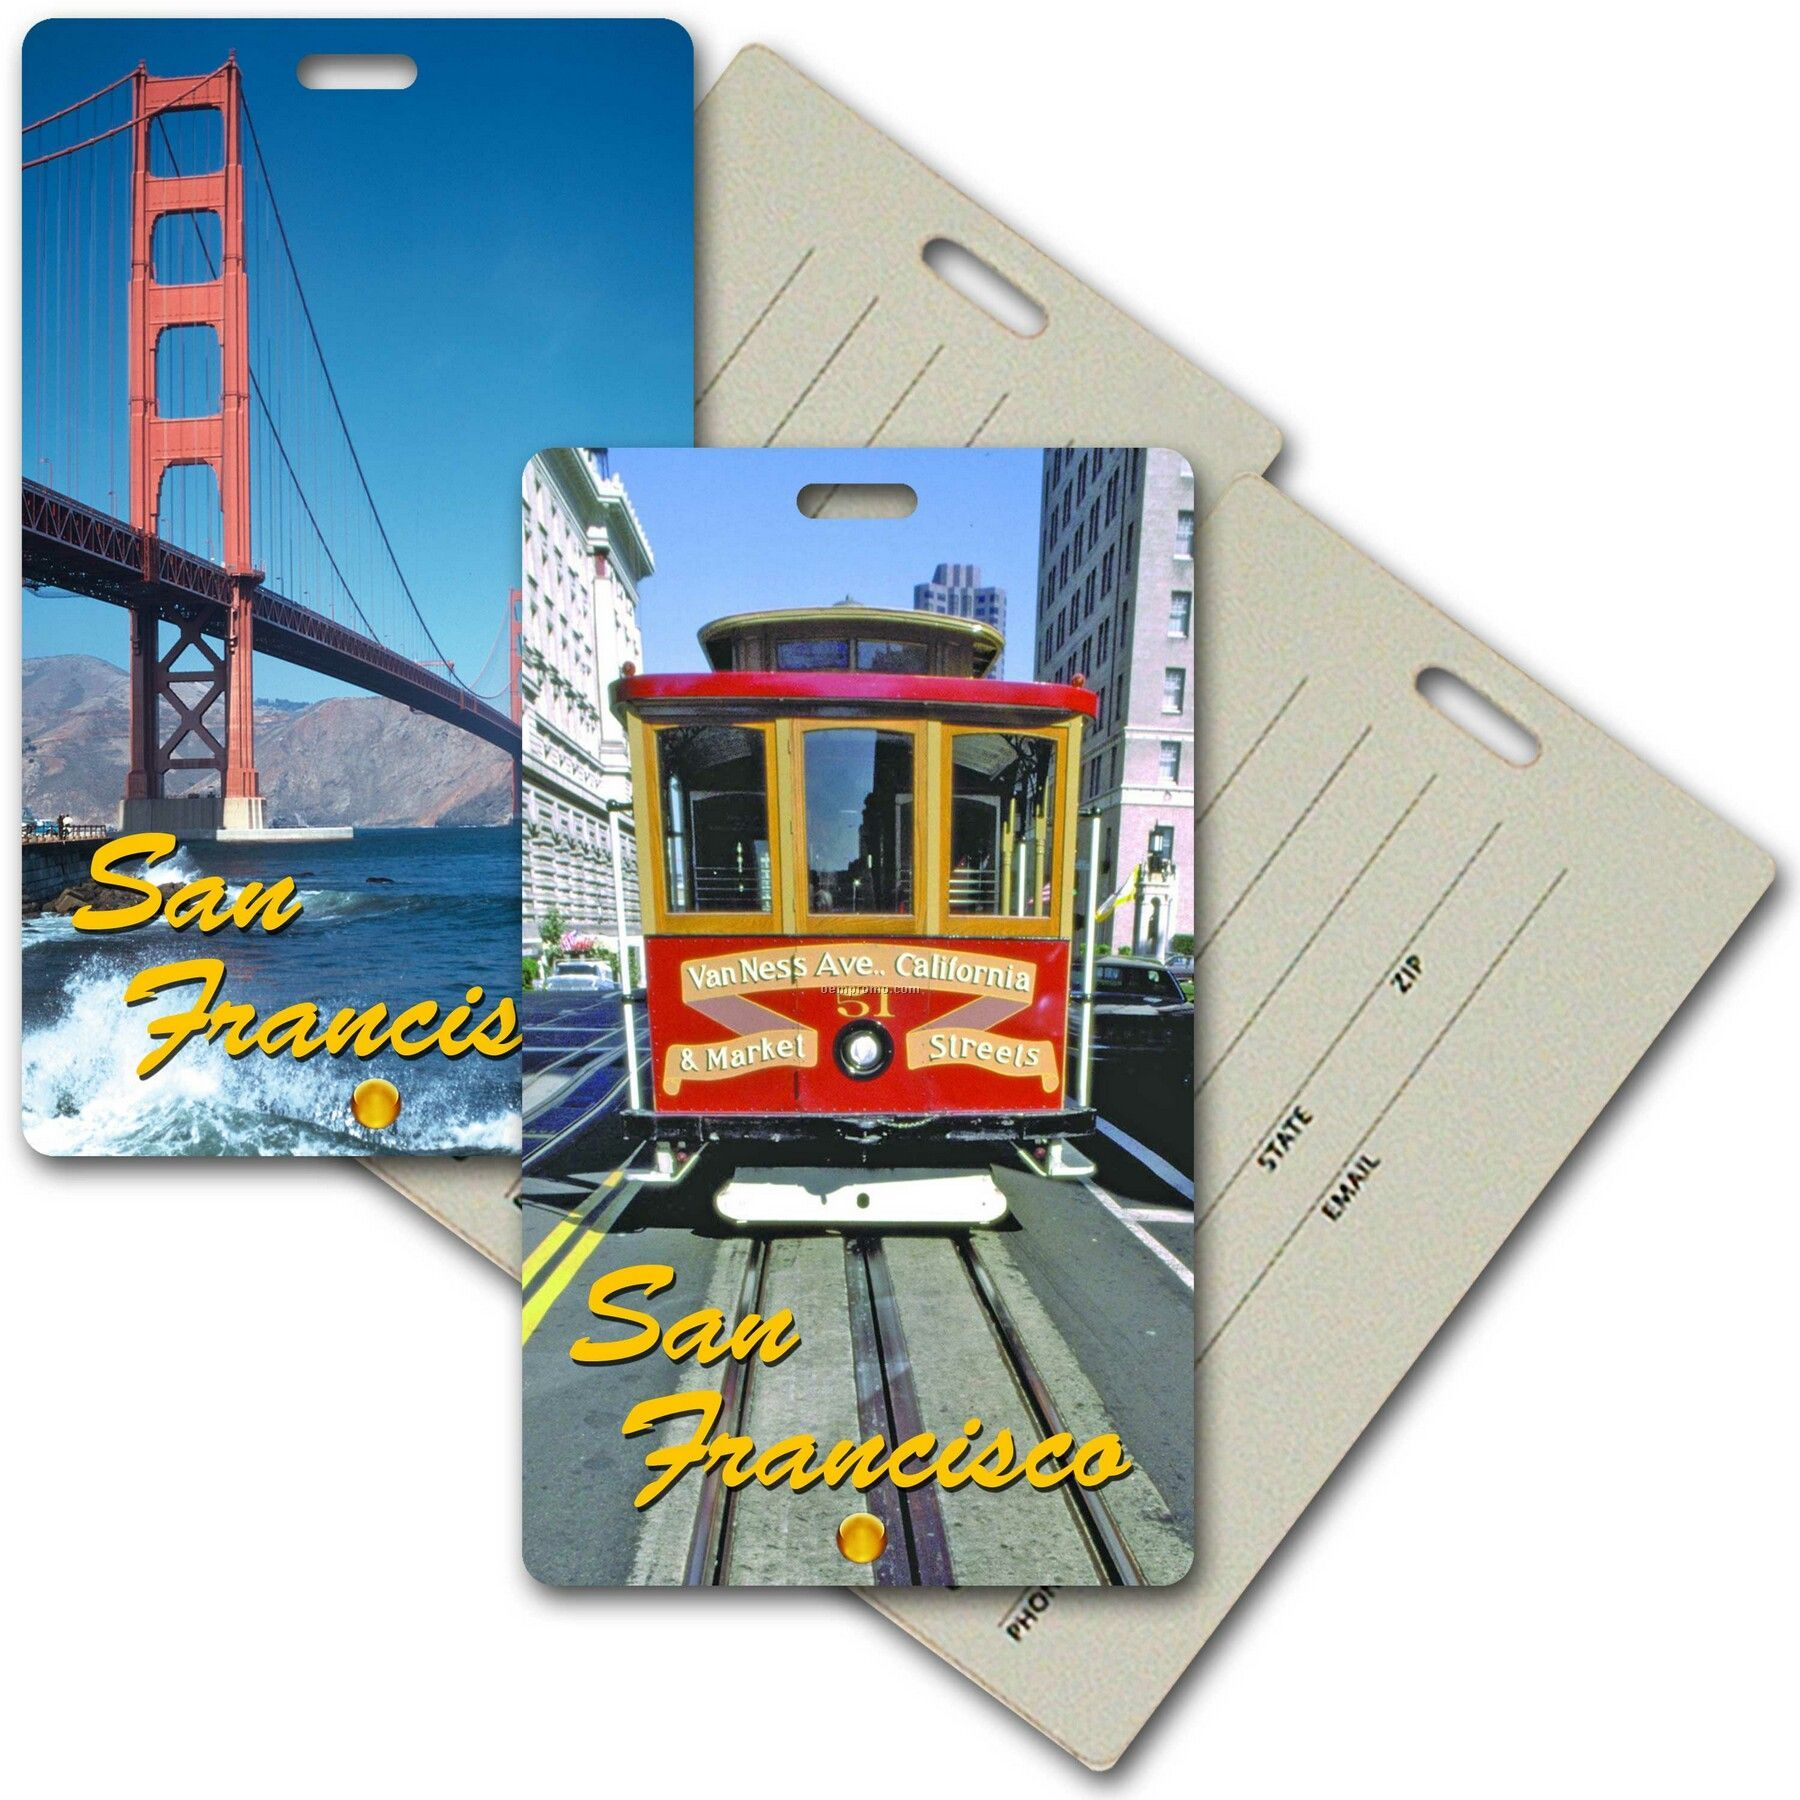 Privacy Tag W/3d Lenticular Images Of San Francisco Landmarks (Imprint)